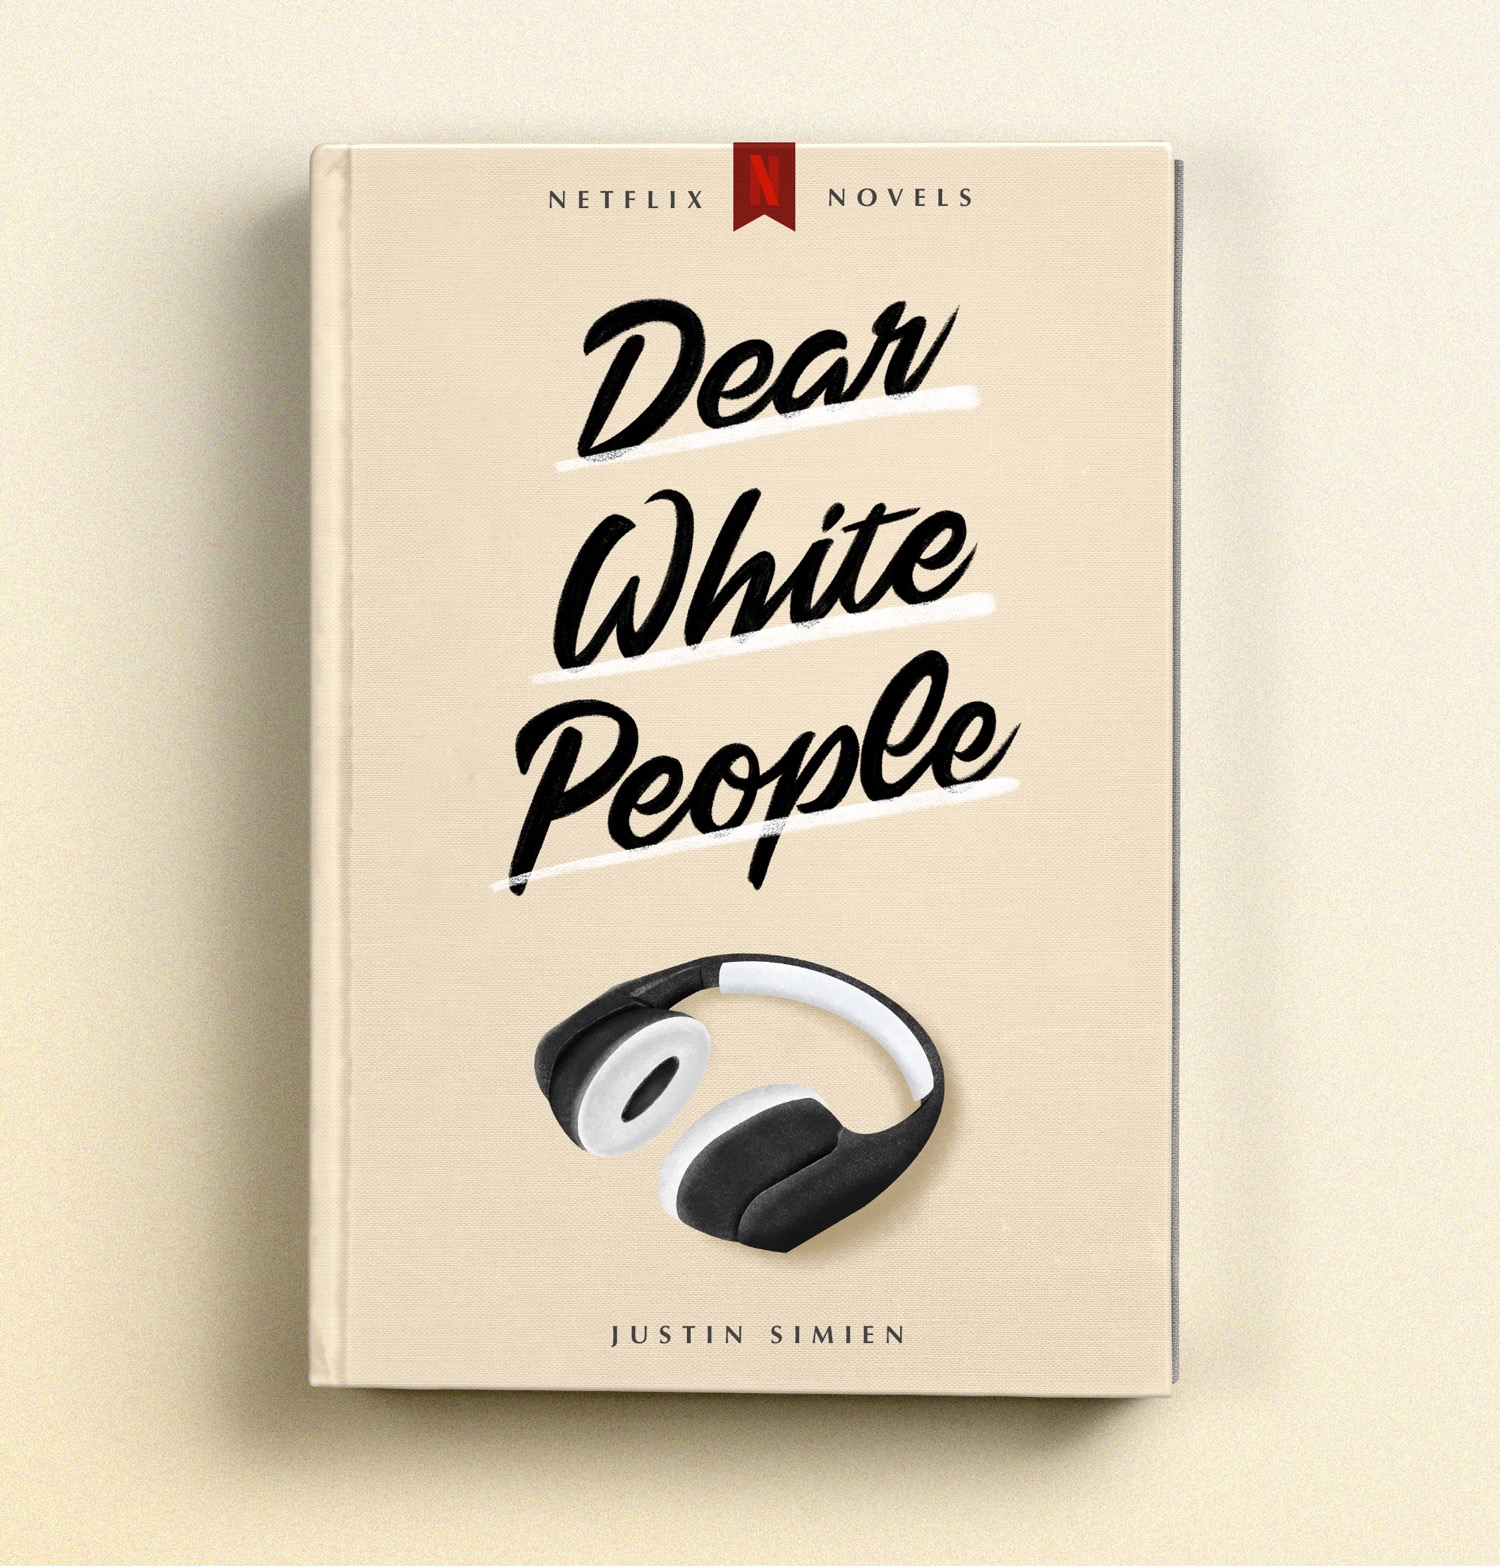 Dear White People cover mockup